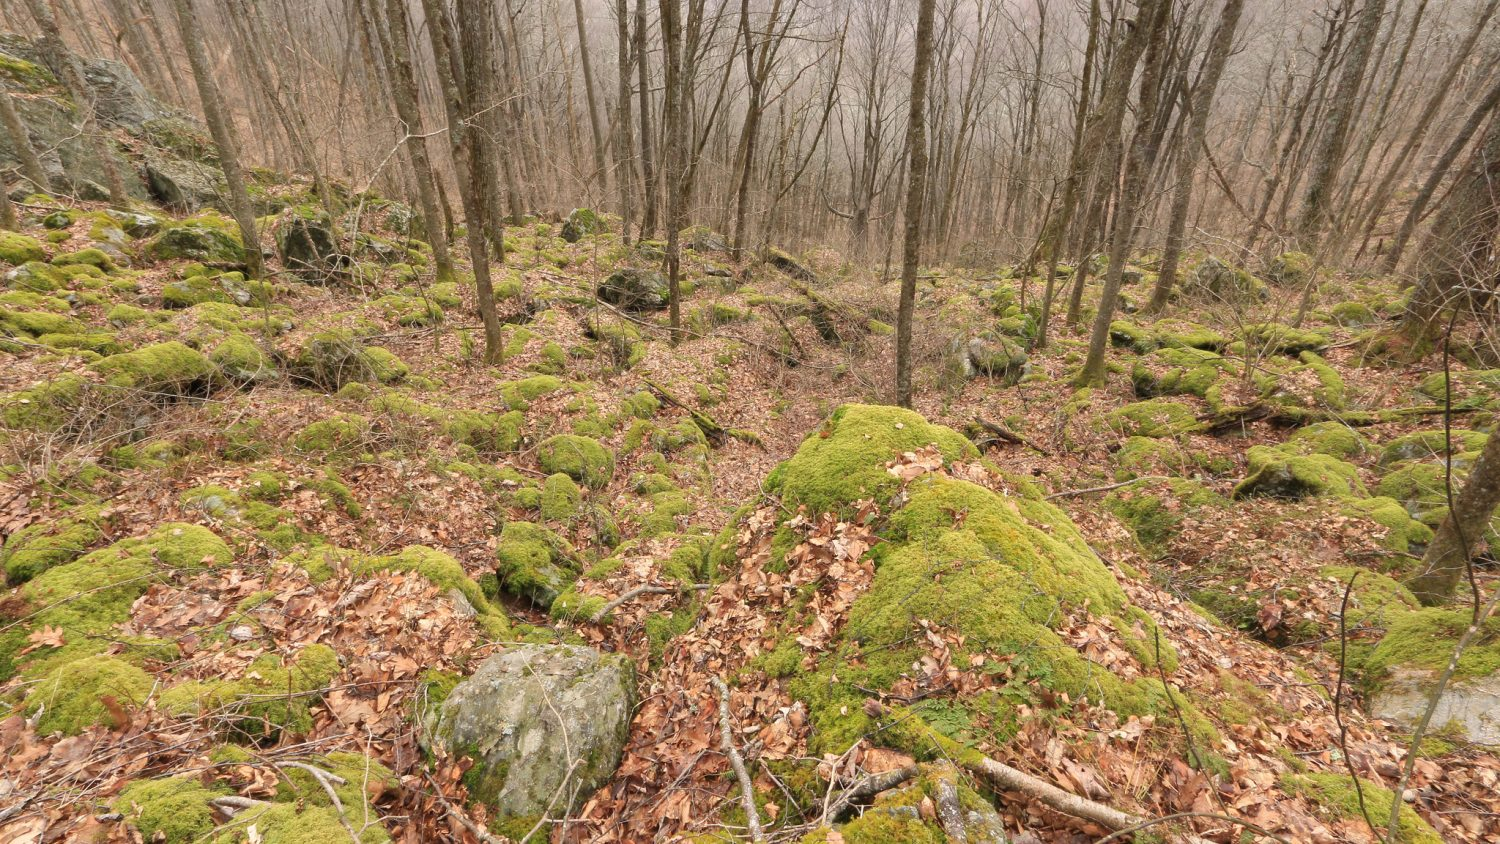 rocky forest scene